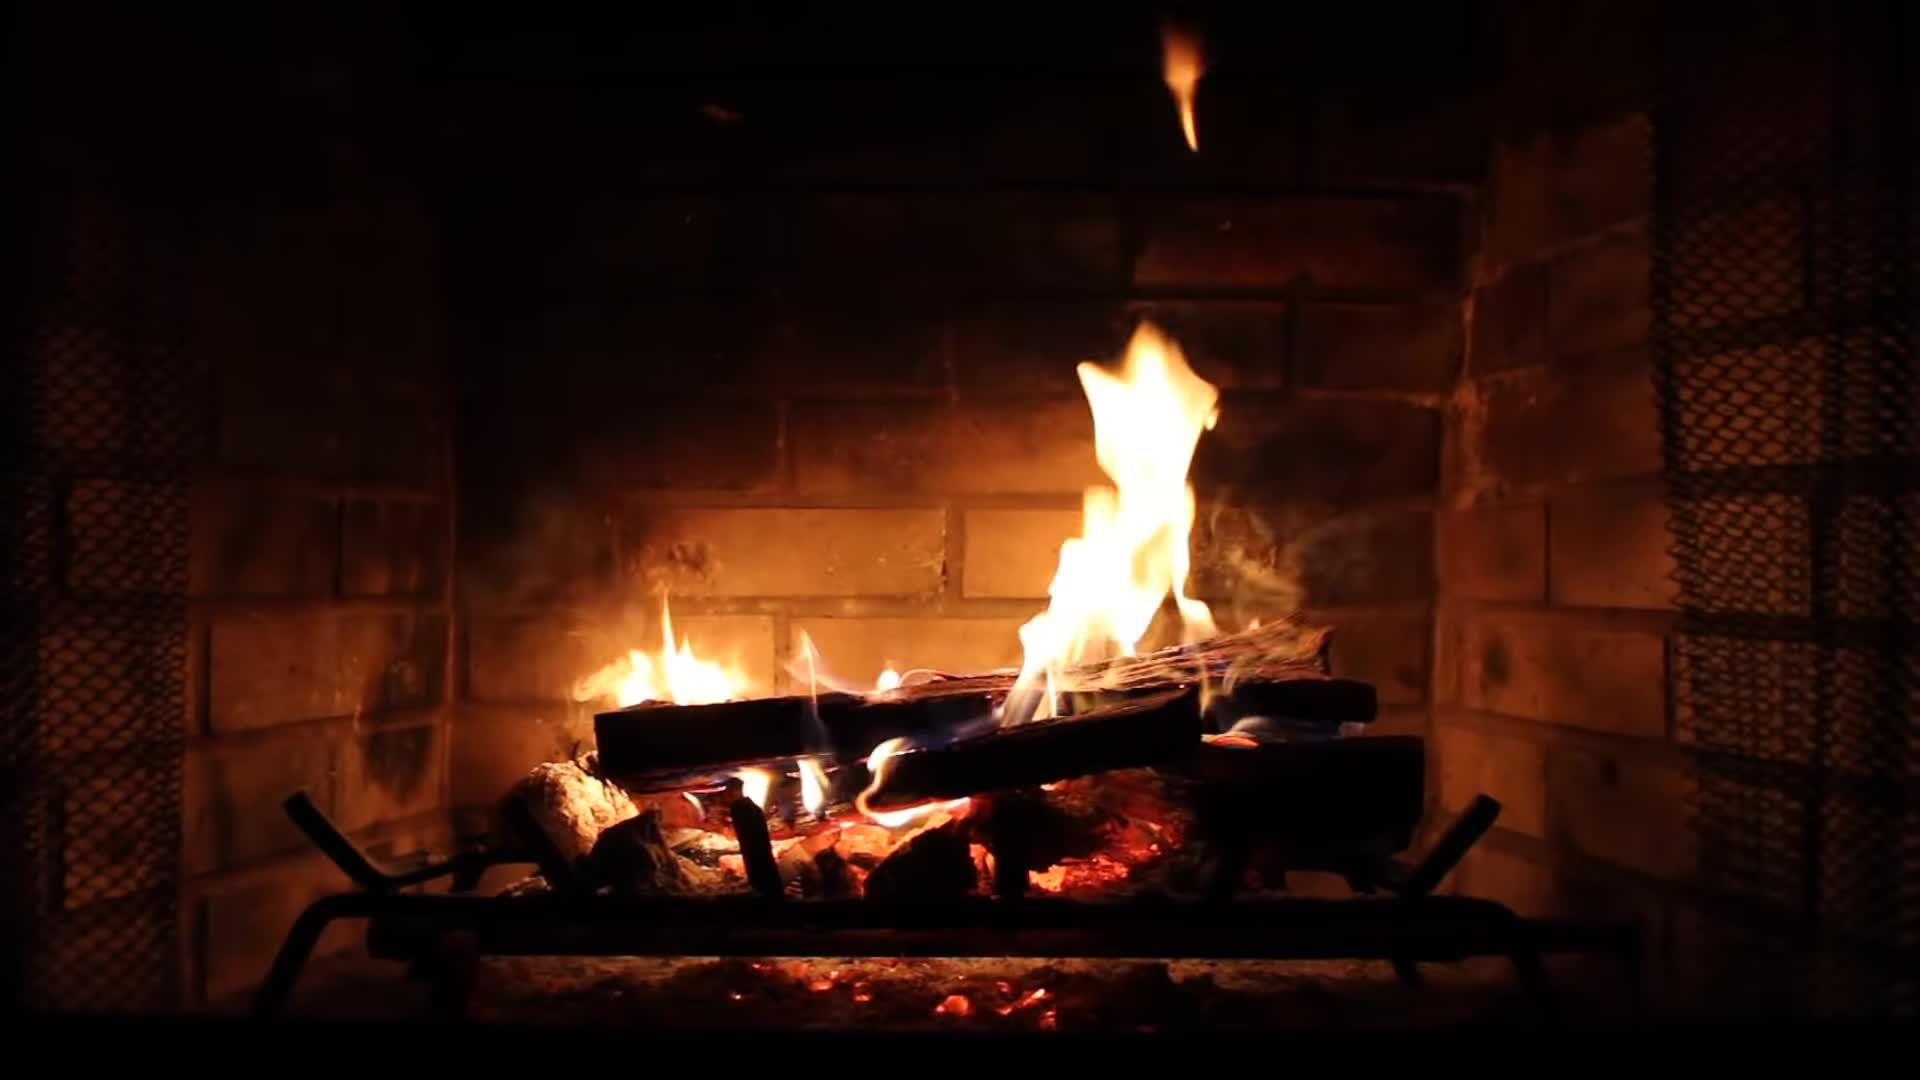 Fireplace Sounds Virtual Fireplace Gifs Search Search Share On Homdor